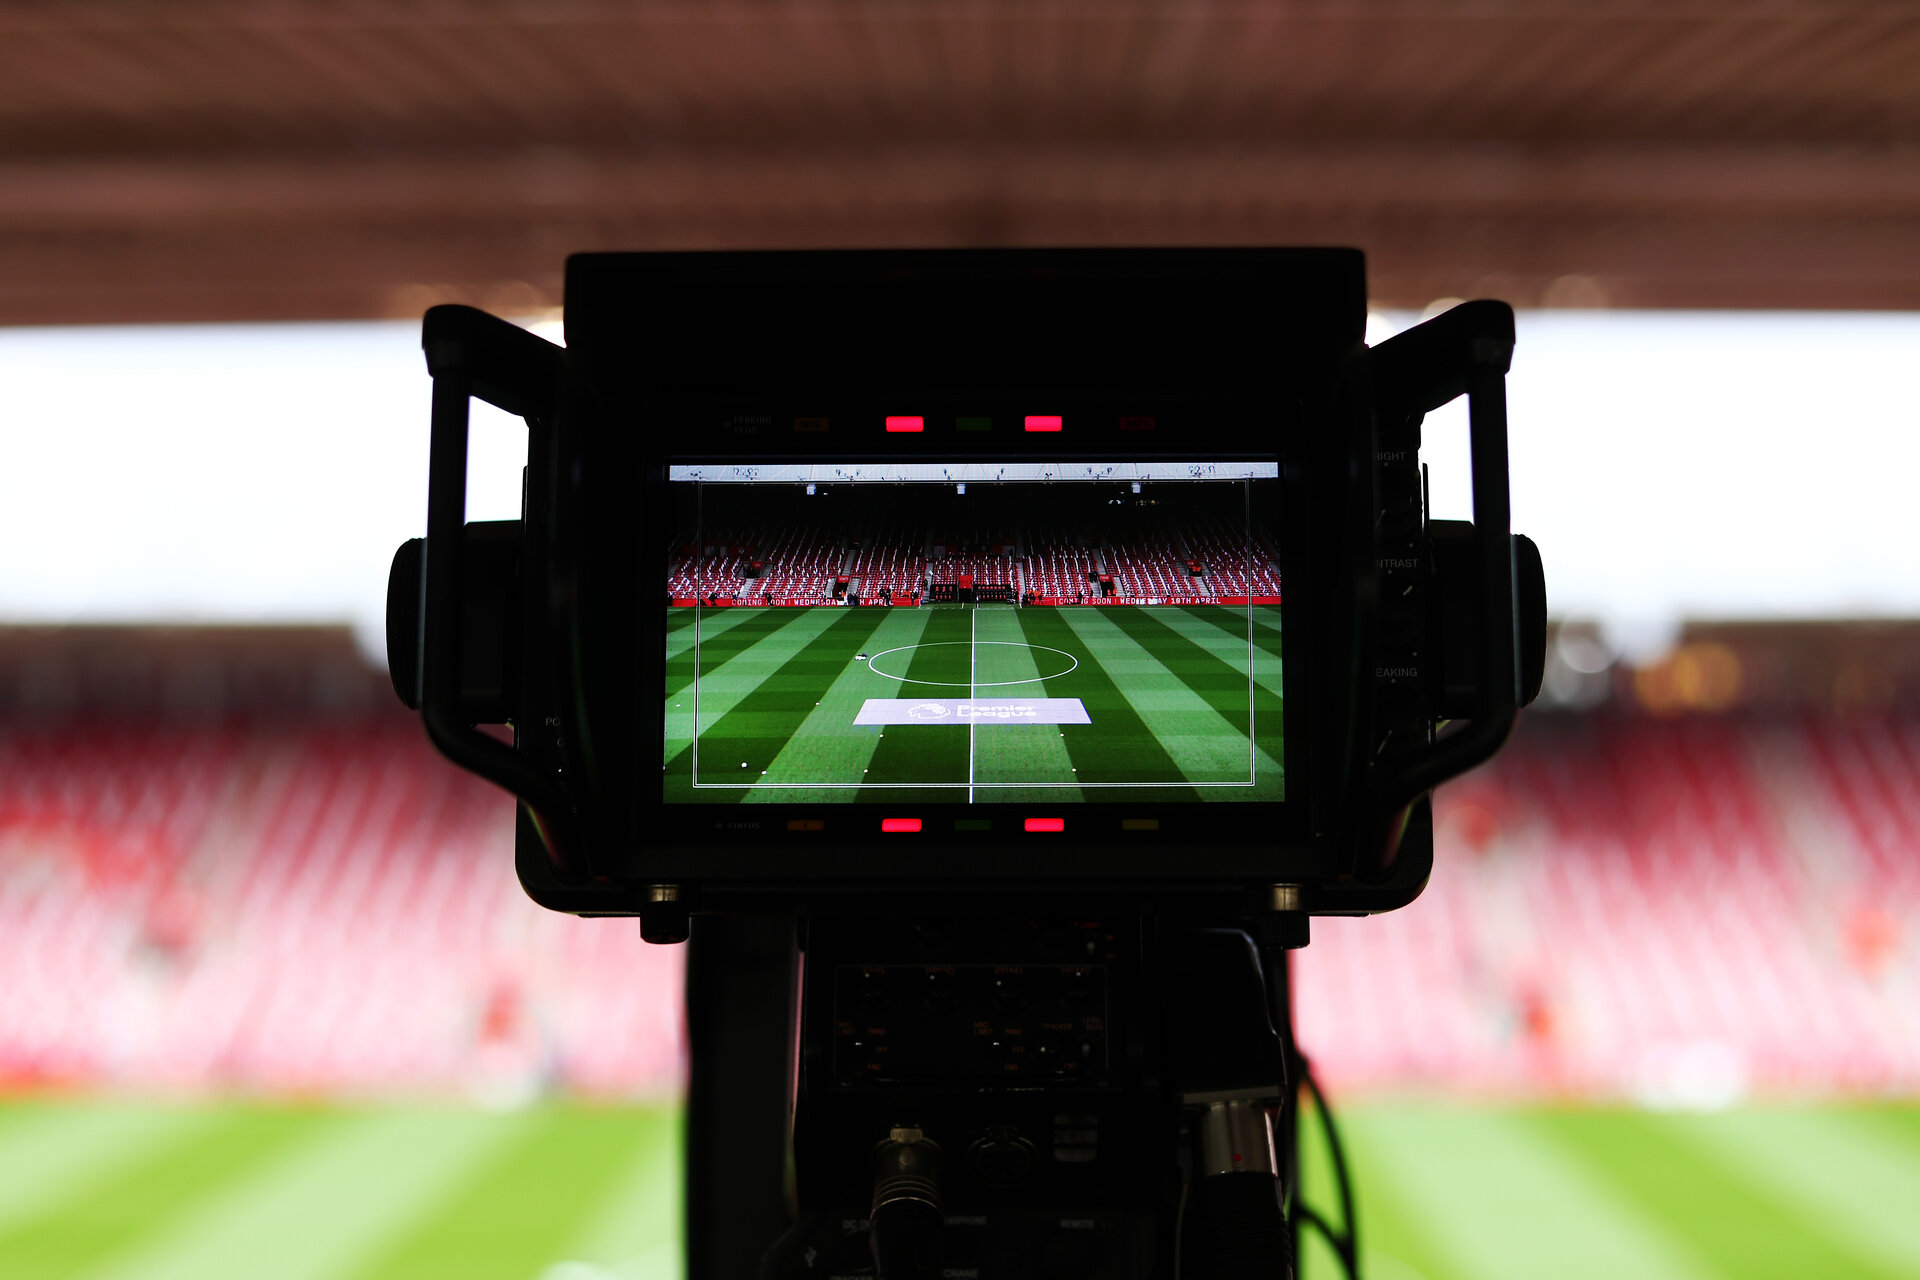 SOUTHAMPTON, ENGLAND - APRIL 05:  General view inside the stadium as a TV camera is showing the pitch ahead of  the Premier League match between Southampton FC and Liverpool FC at St Mary's Stadium on April 05, 2019 in Southampton, United Kingdom. (Photo by Southampton FC/Southampton FC via Getty Images)